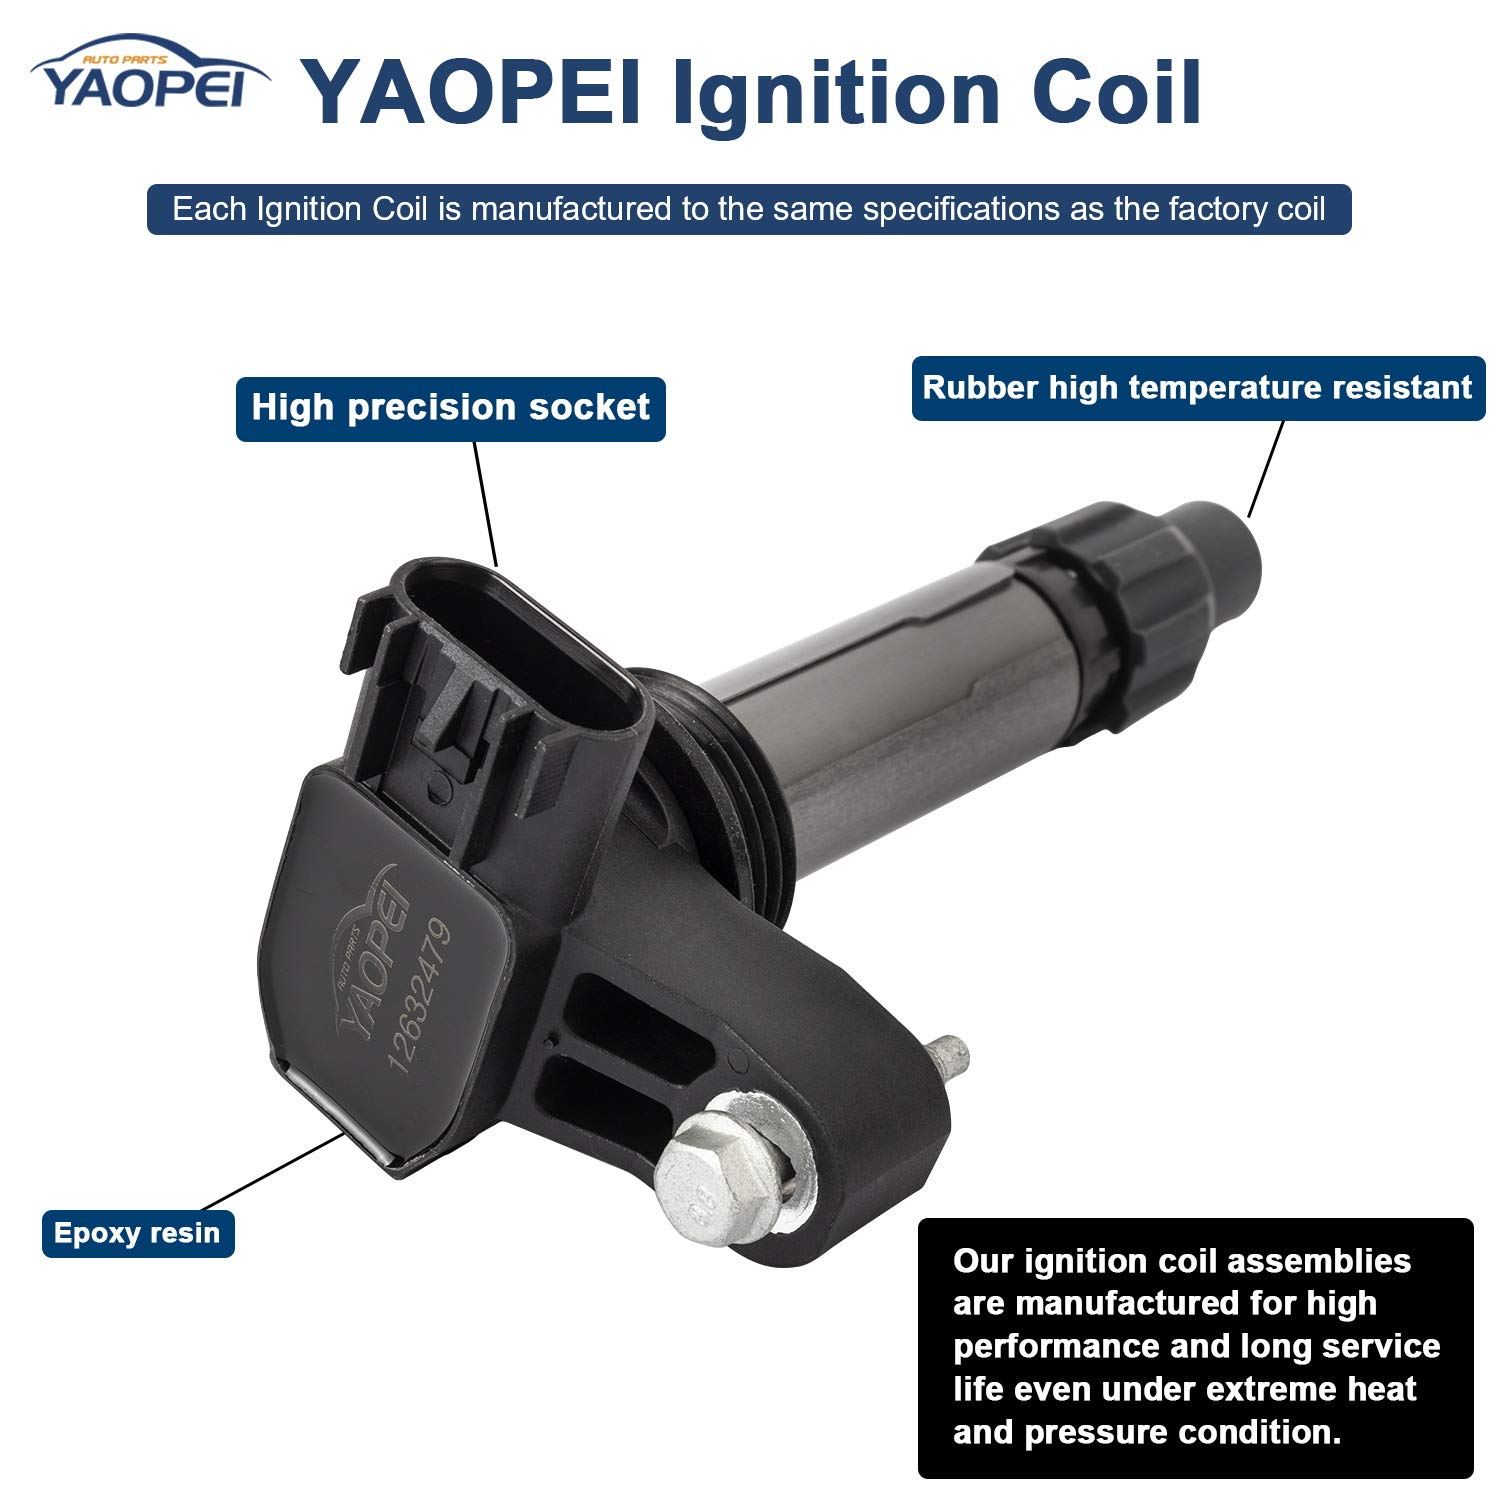 Pack of 6 Ignition Coil Replacement for Lexus IS F Scion xB Toyota 4Runner Toyota Tacoma UF495 90080-19015 5C1419 C1426-2.4L 2.7L 4.0L HONORY USA